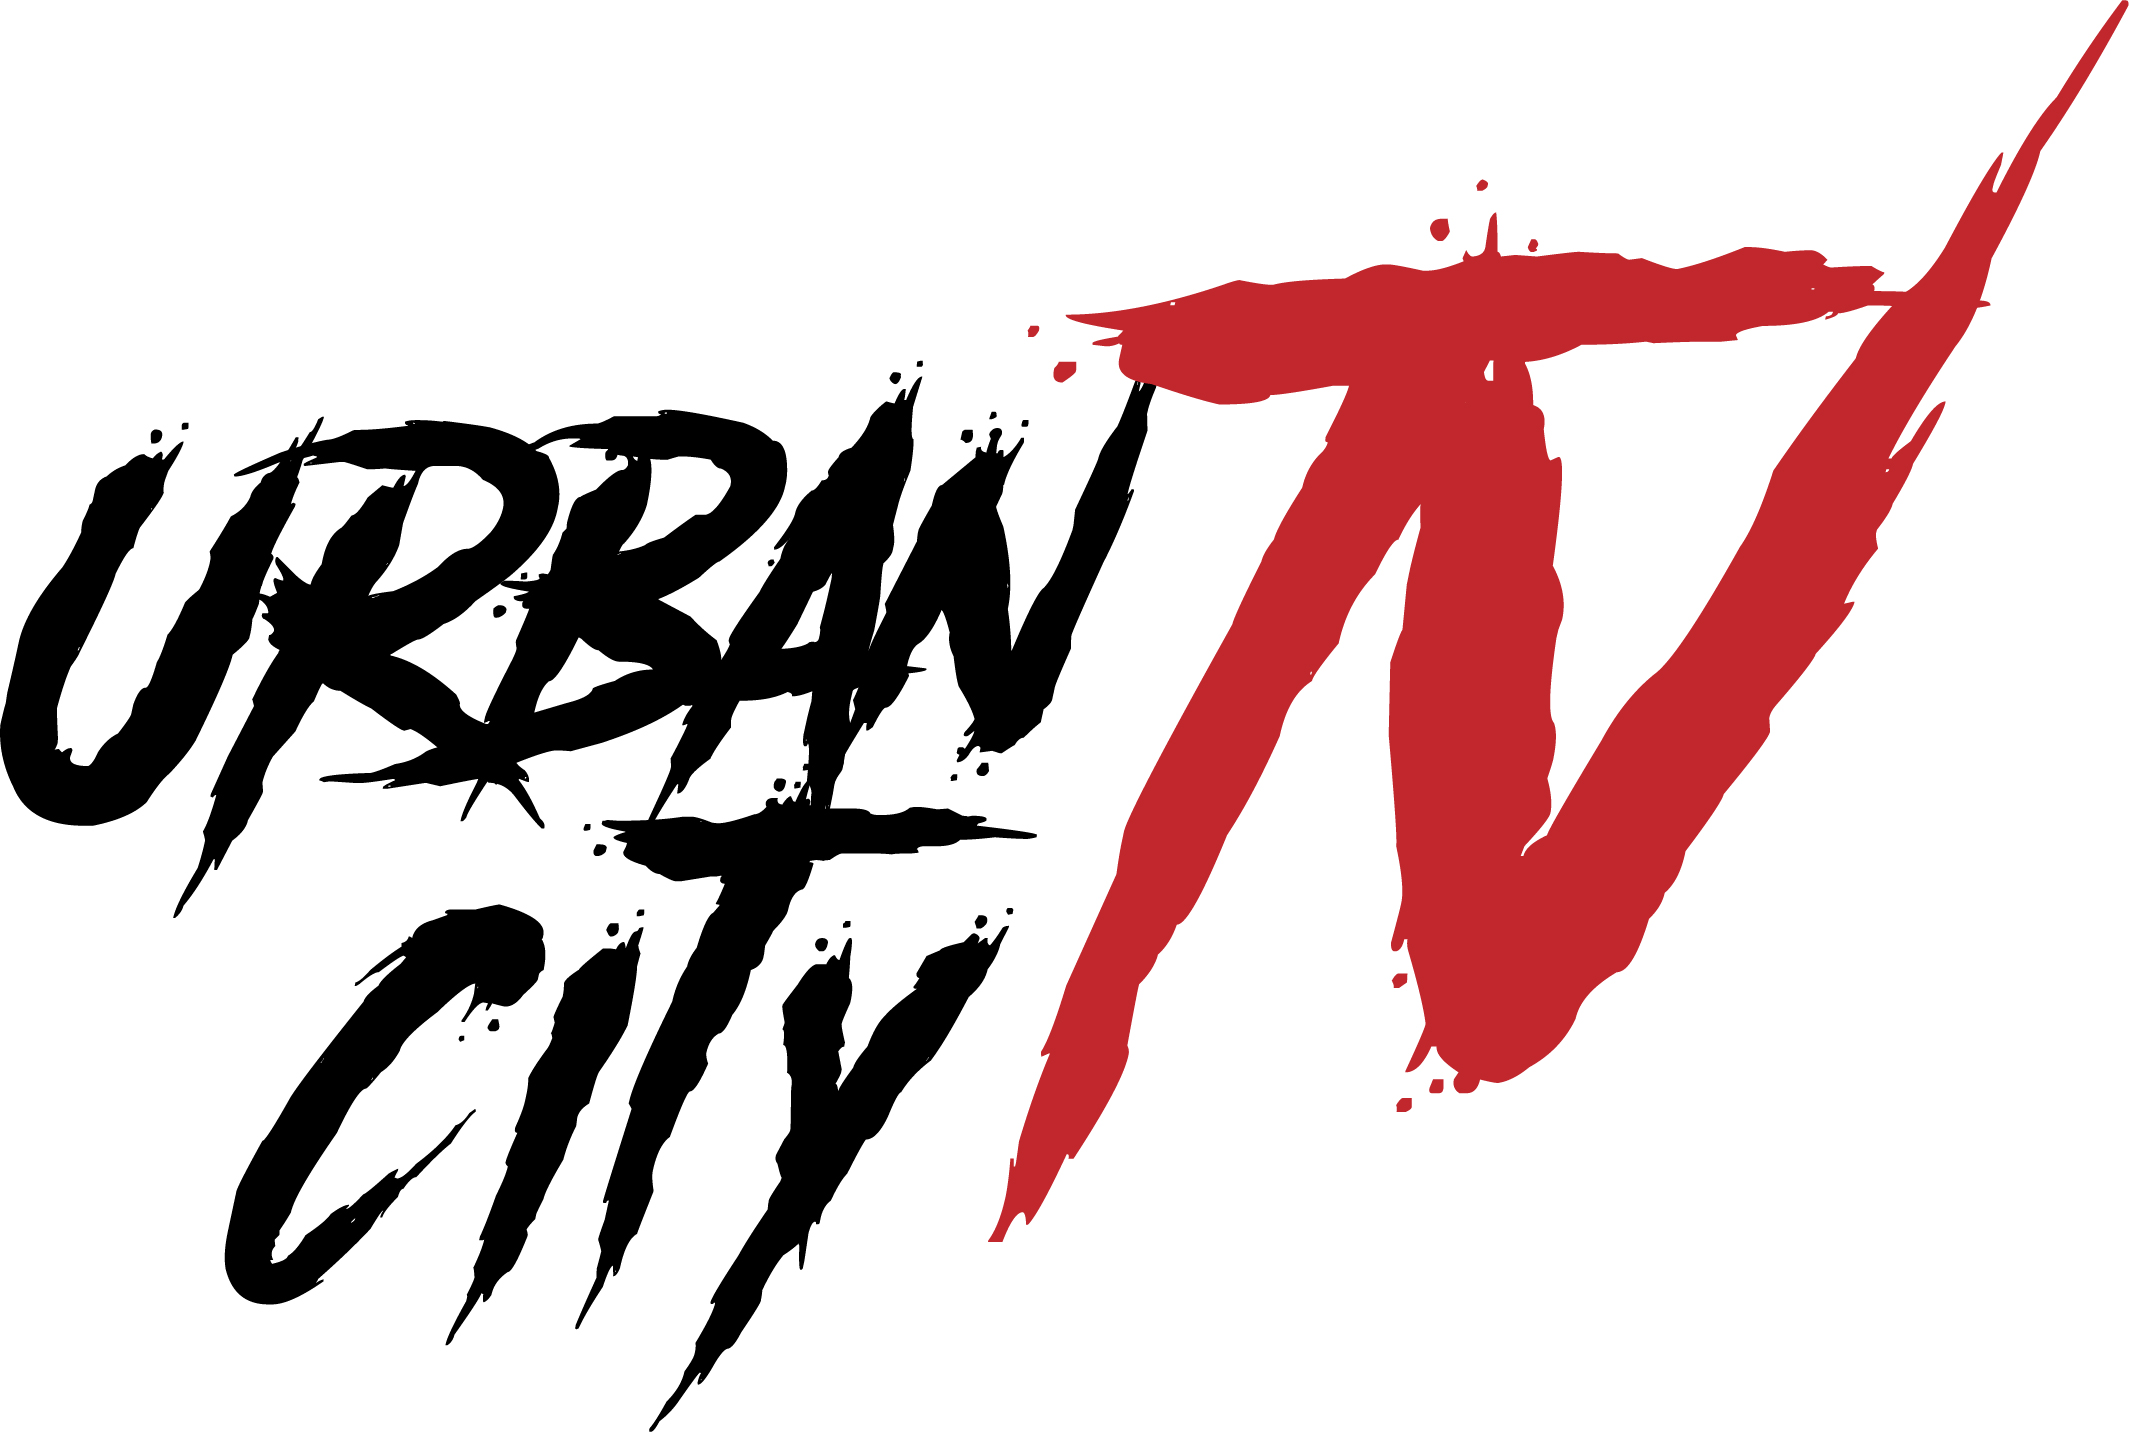 URBAN CITY TV